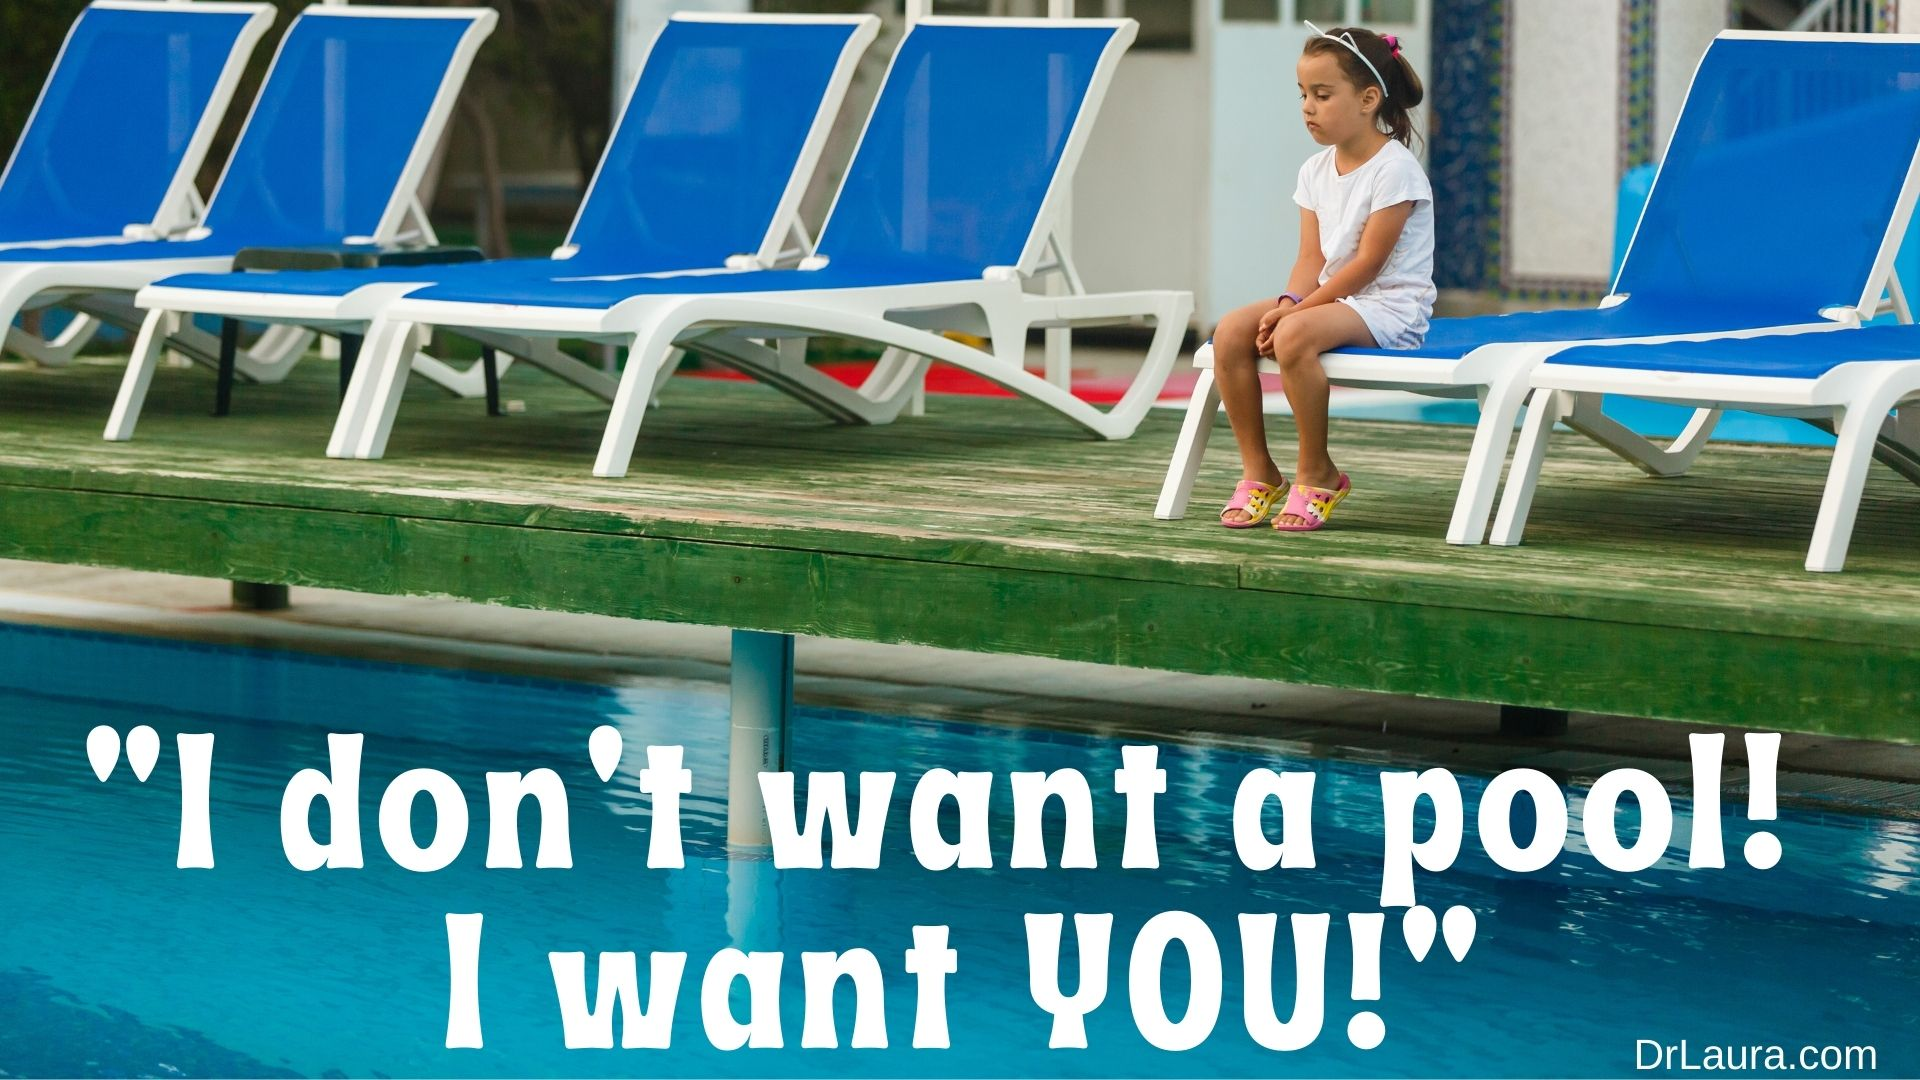 Email of the Day: But Momma – I Want YOU